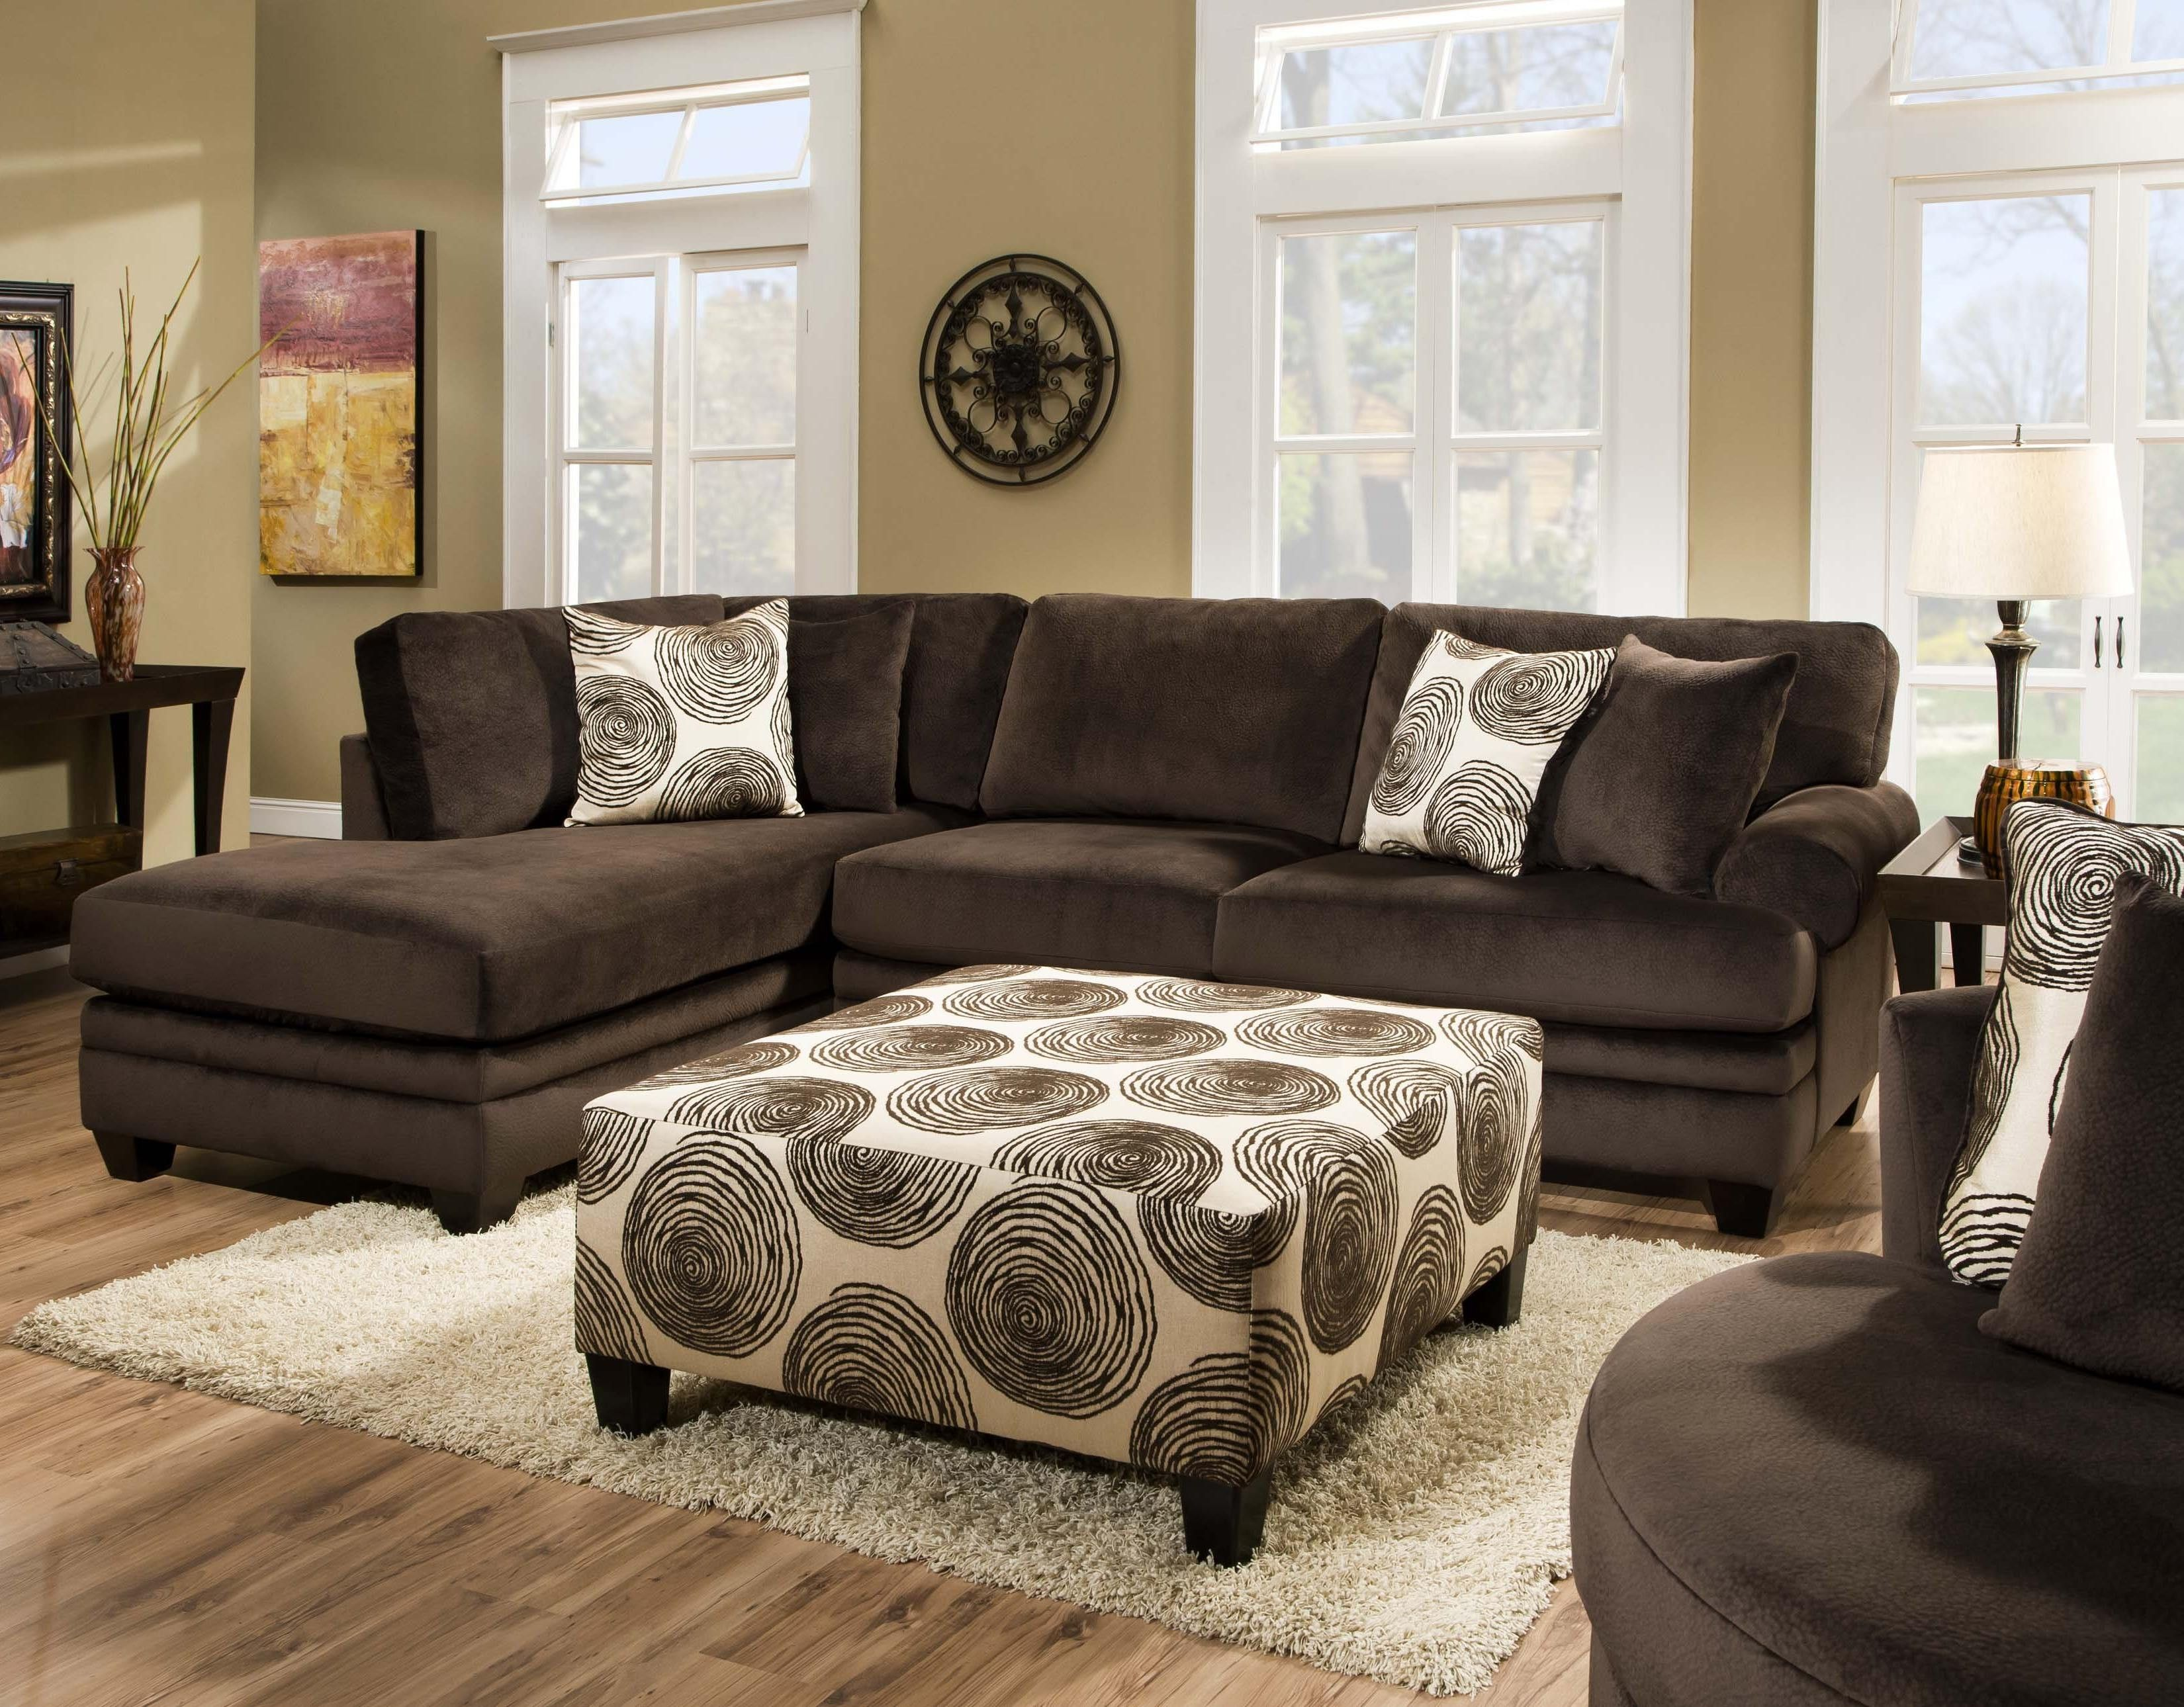 8642 transitional sectional sofa with chaise by albany ivory throw essence grp 8645 2 ...